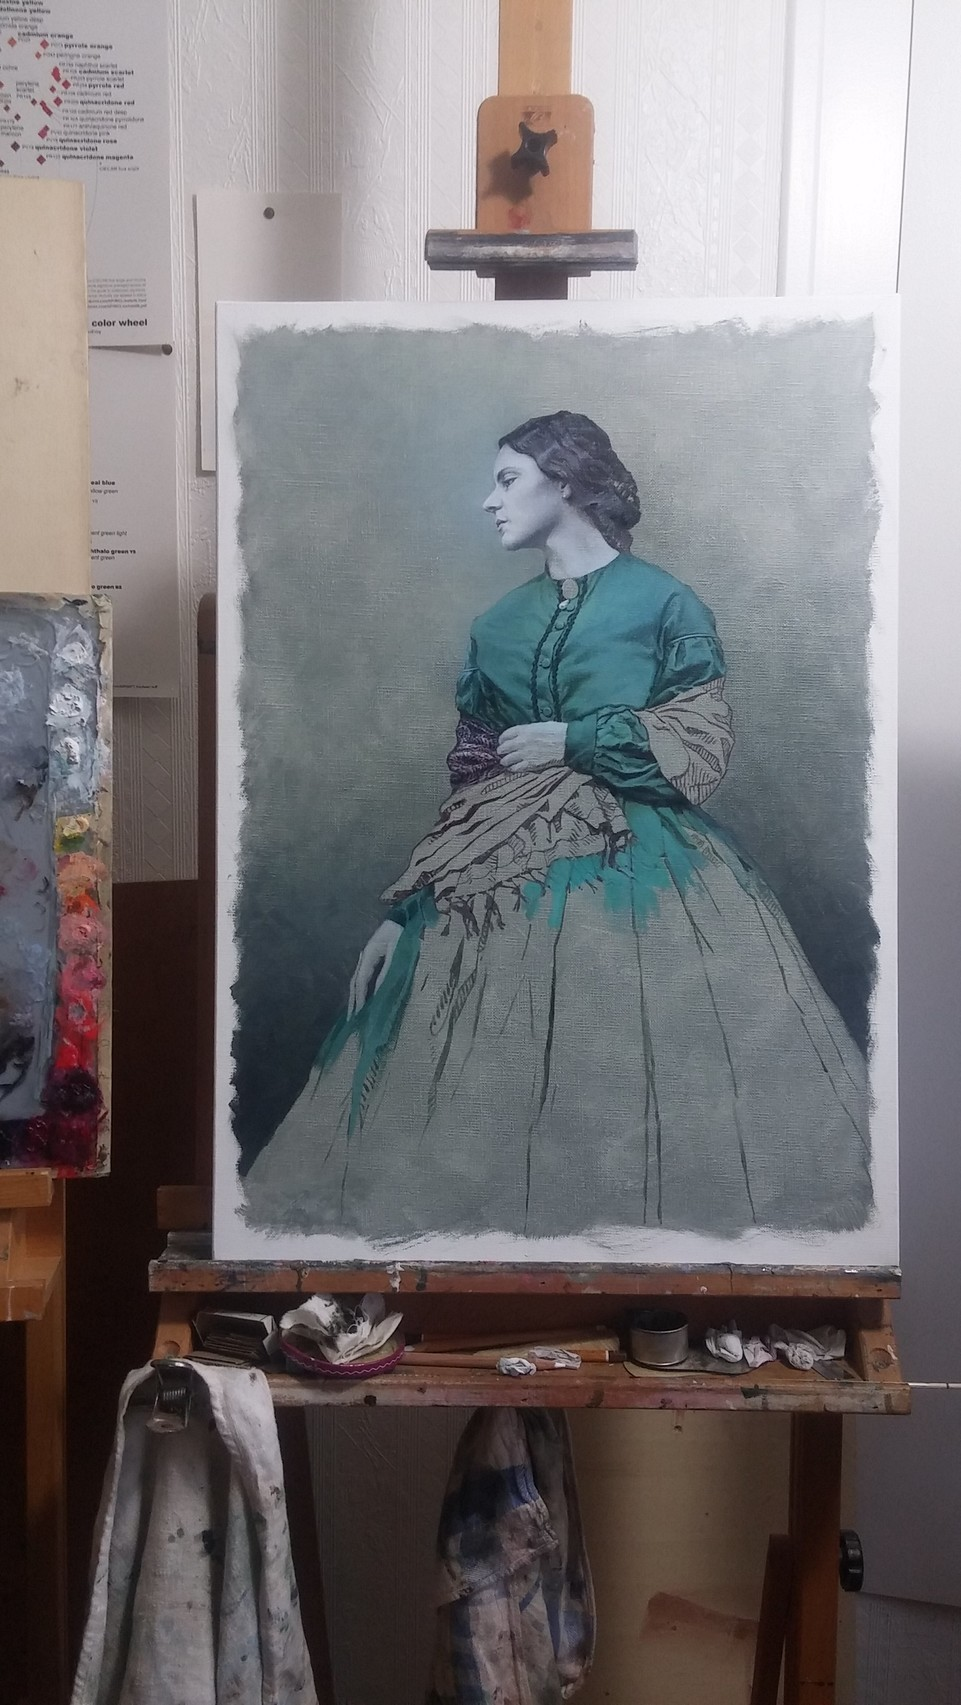 an oil painting portrait under way, sitting on an easel, next to a palette